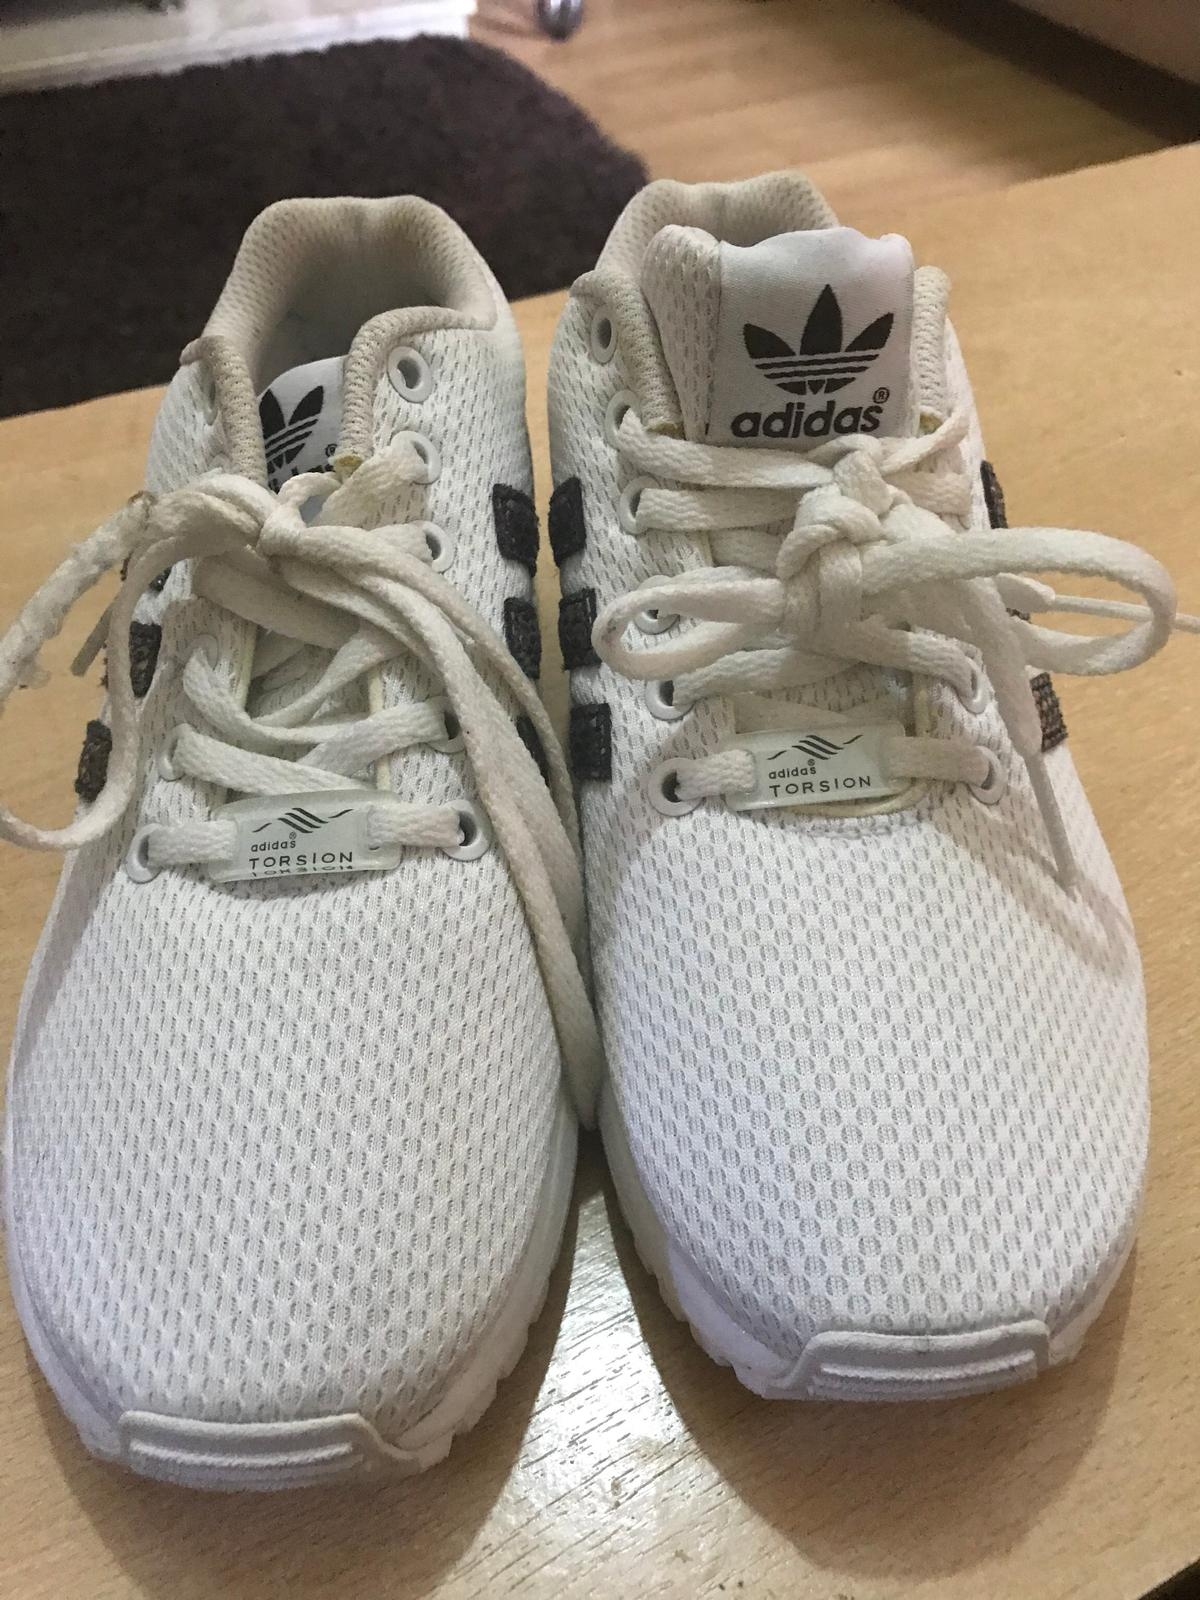 57cb8f1fe Adidas ZX FLUX Girls trainers uk size 4 in BD7 Bradford for £20.00 ...